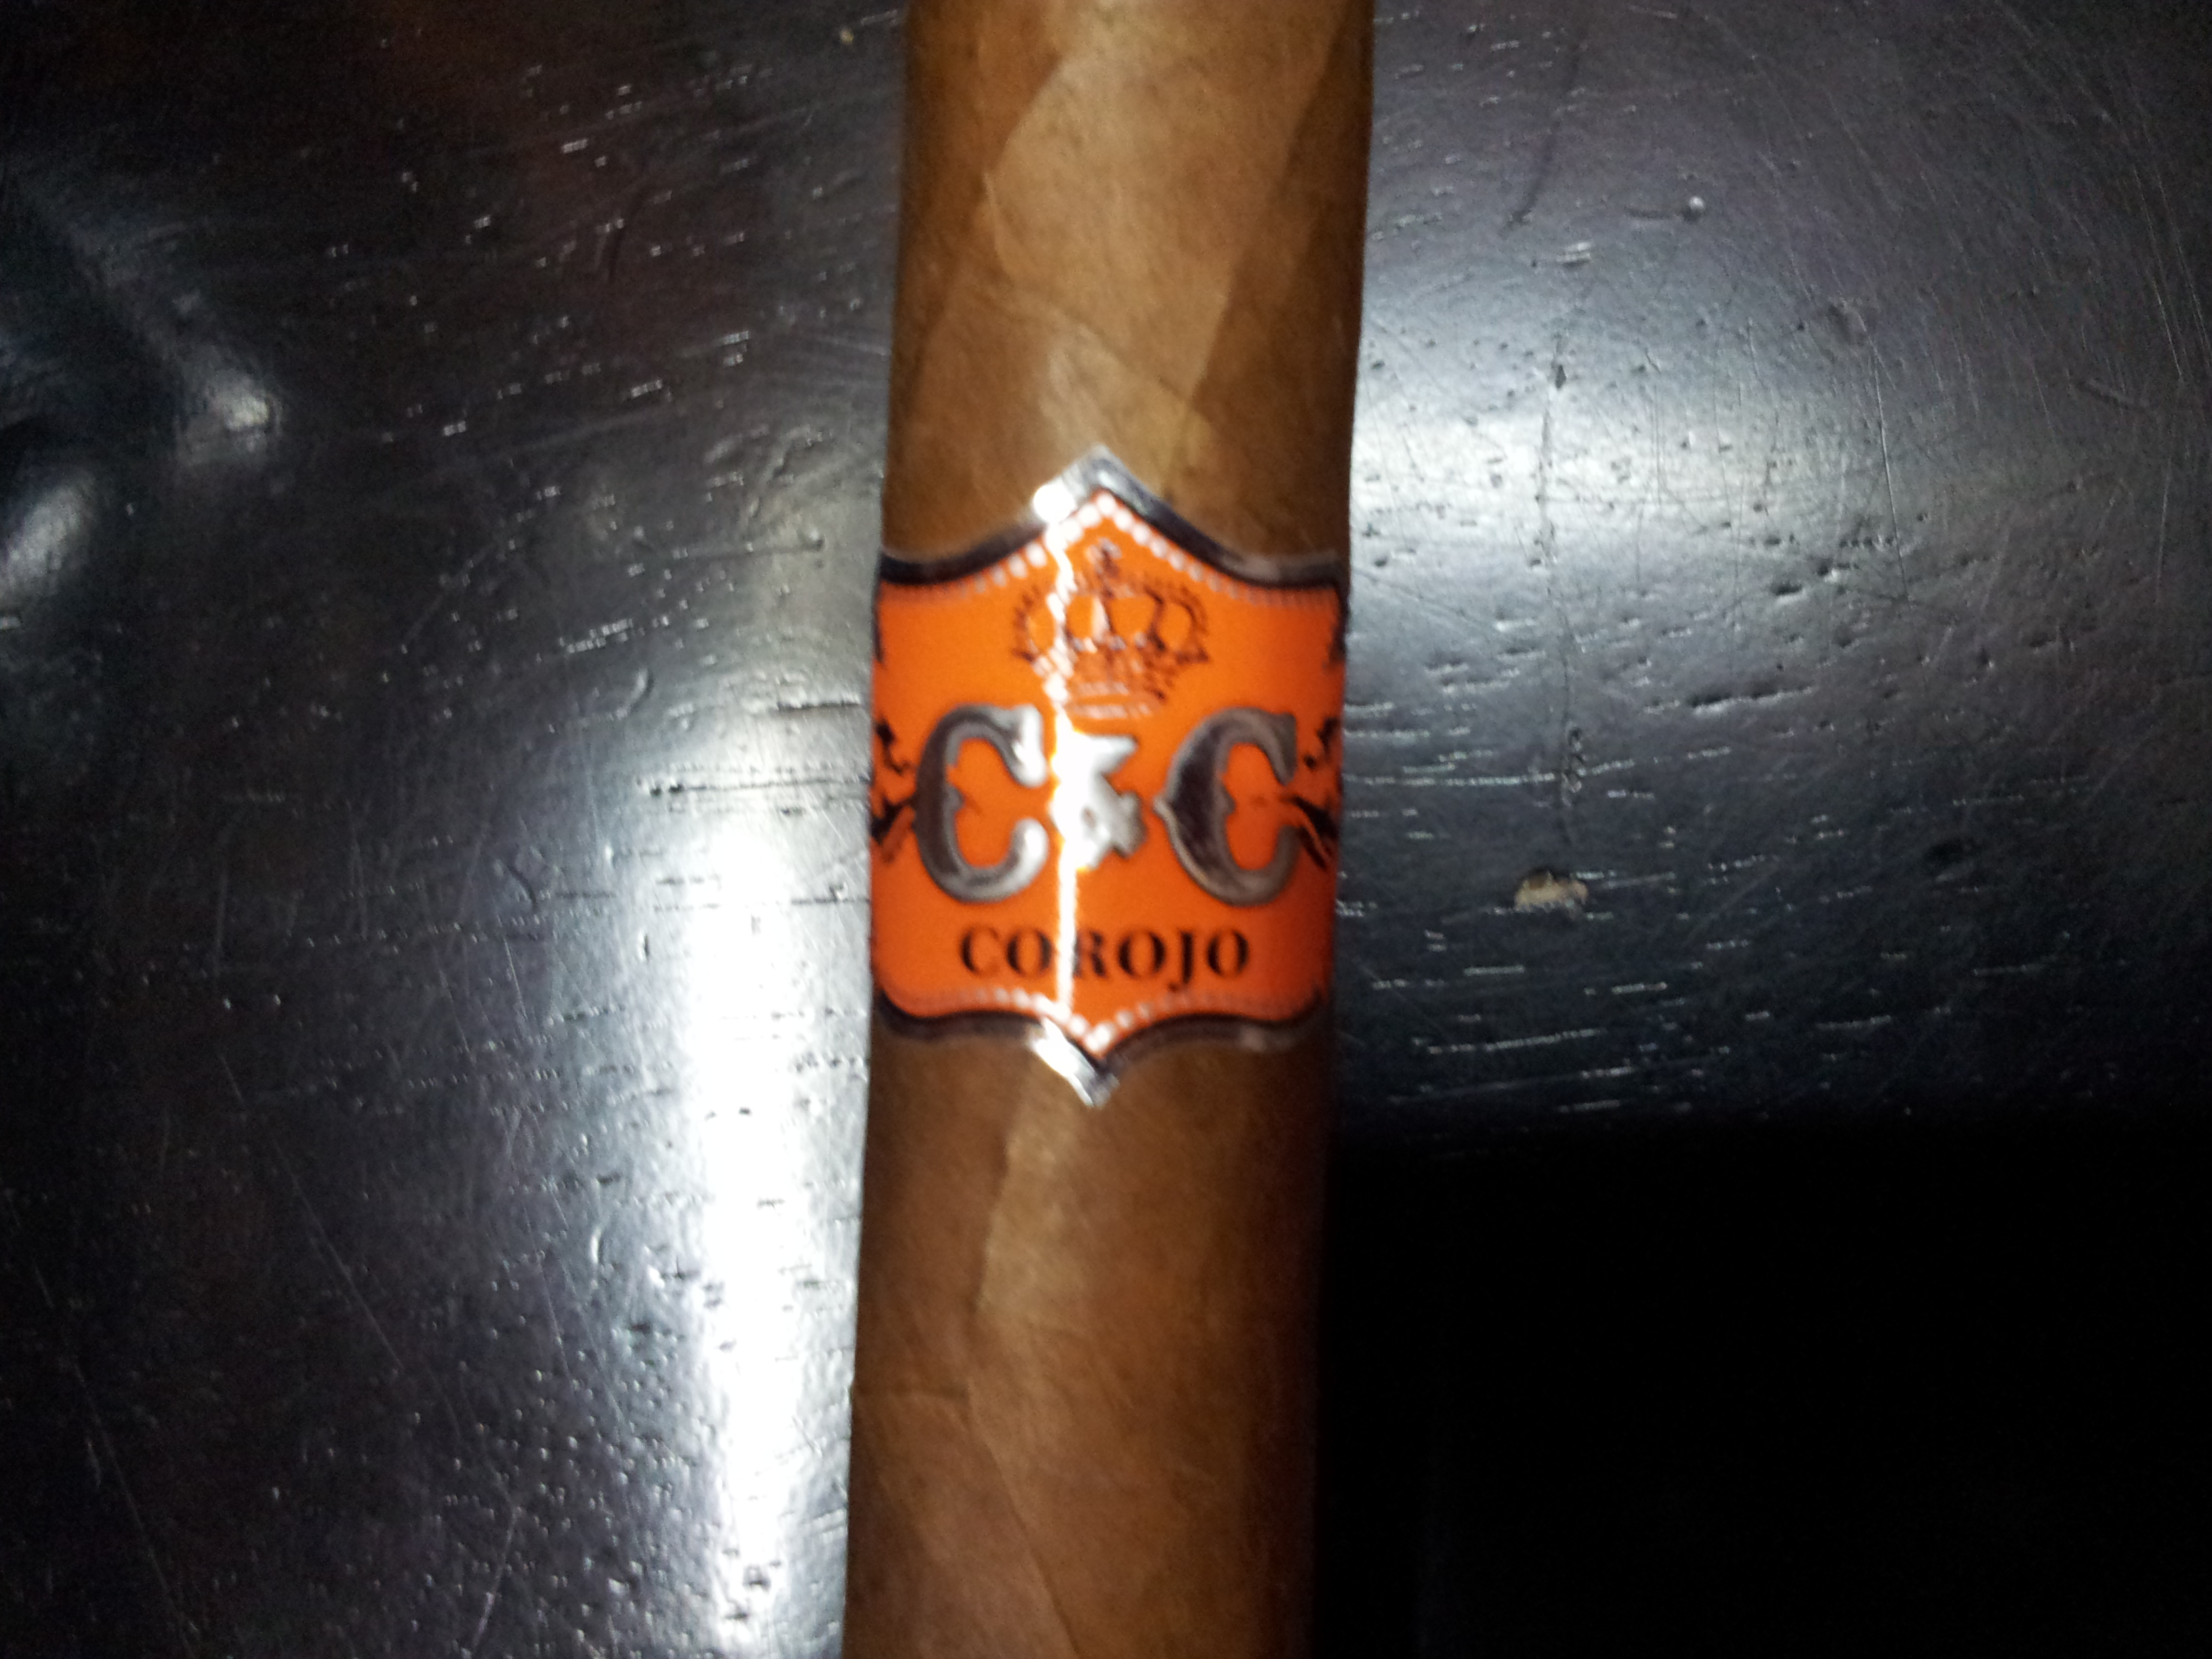 C&C Corojo – Cigar Review